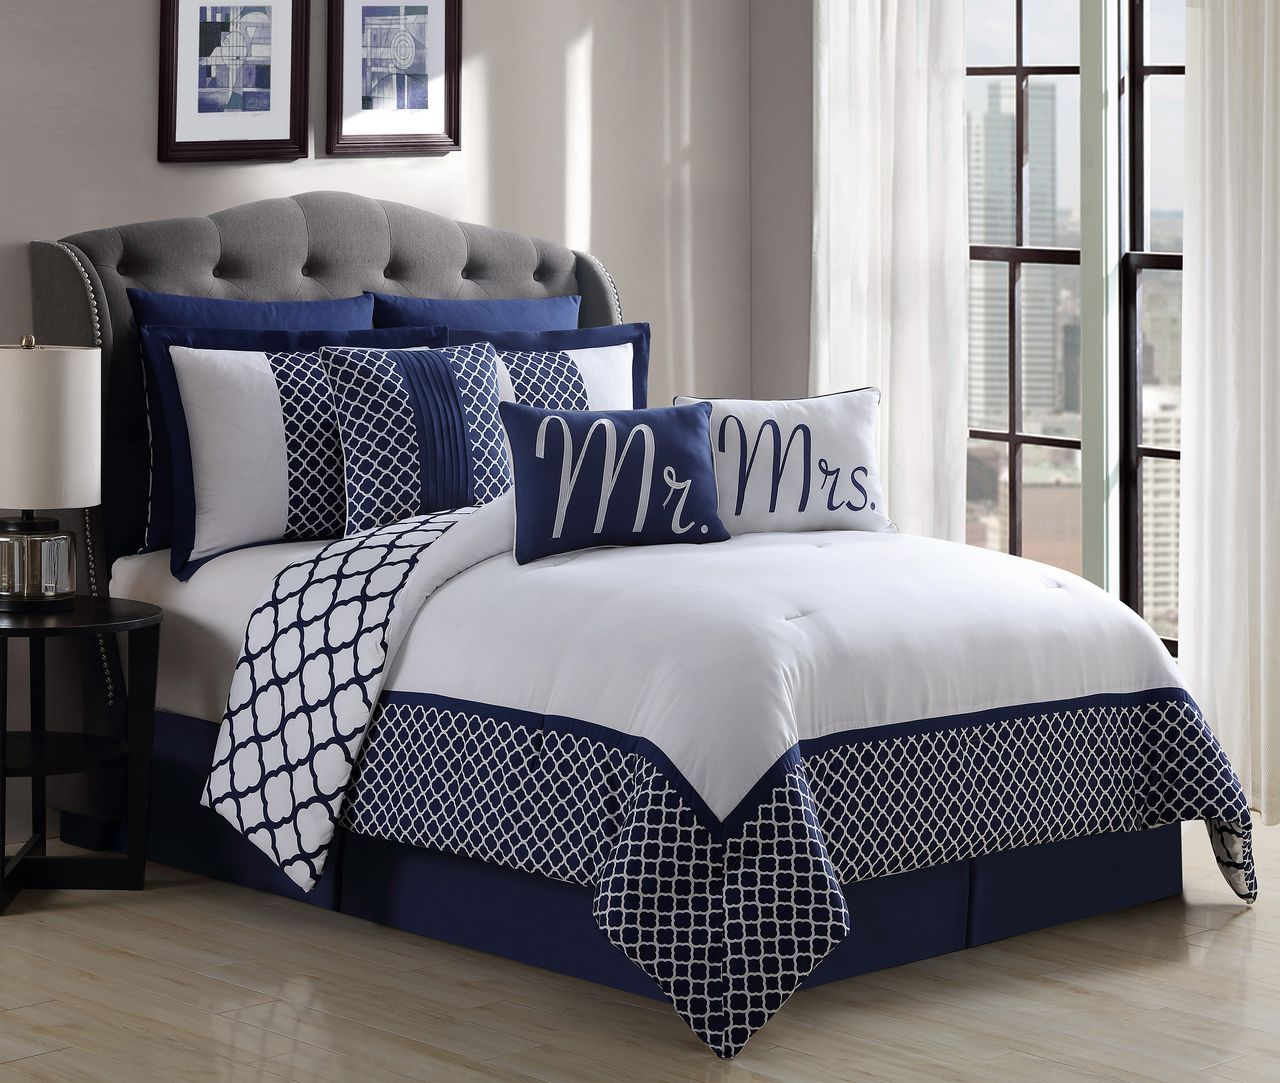 9 Piece Mr. and Mrs. Navy/White Reversible Comforter Set ...